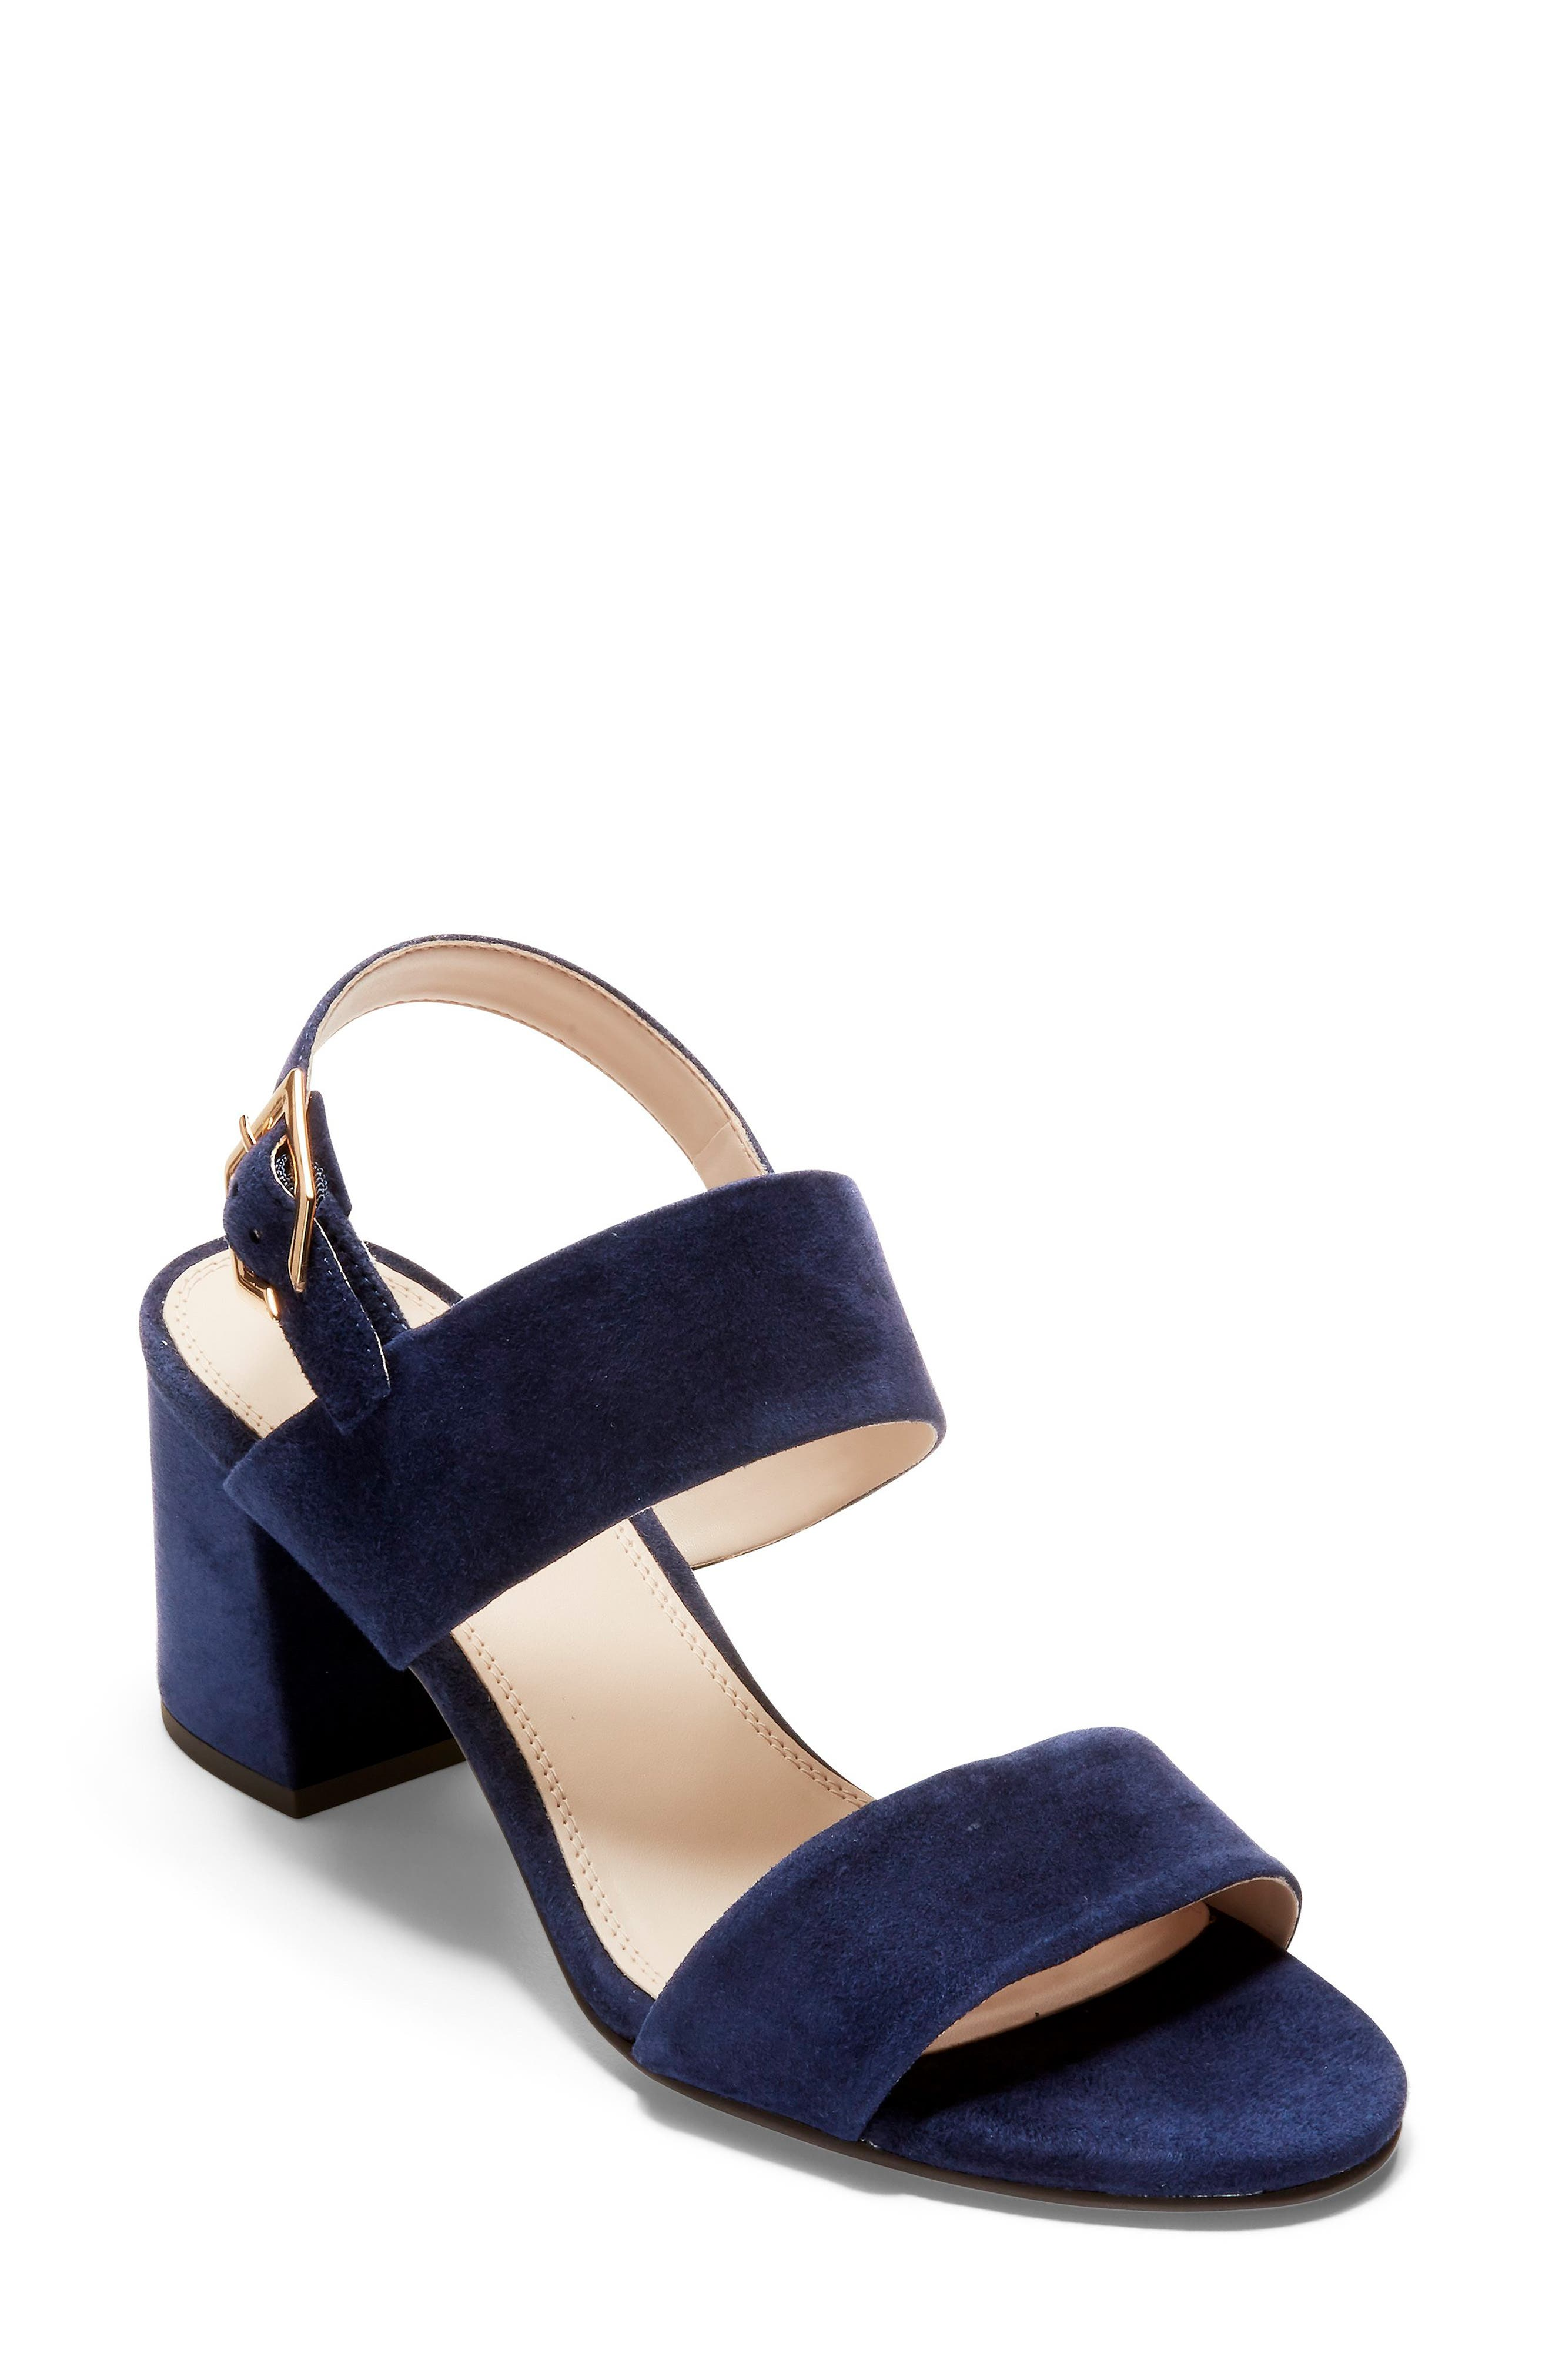 Avani Block Heel Sandal,                             Main thumbnail 1, color,                             MARINE BLUE SUEDE